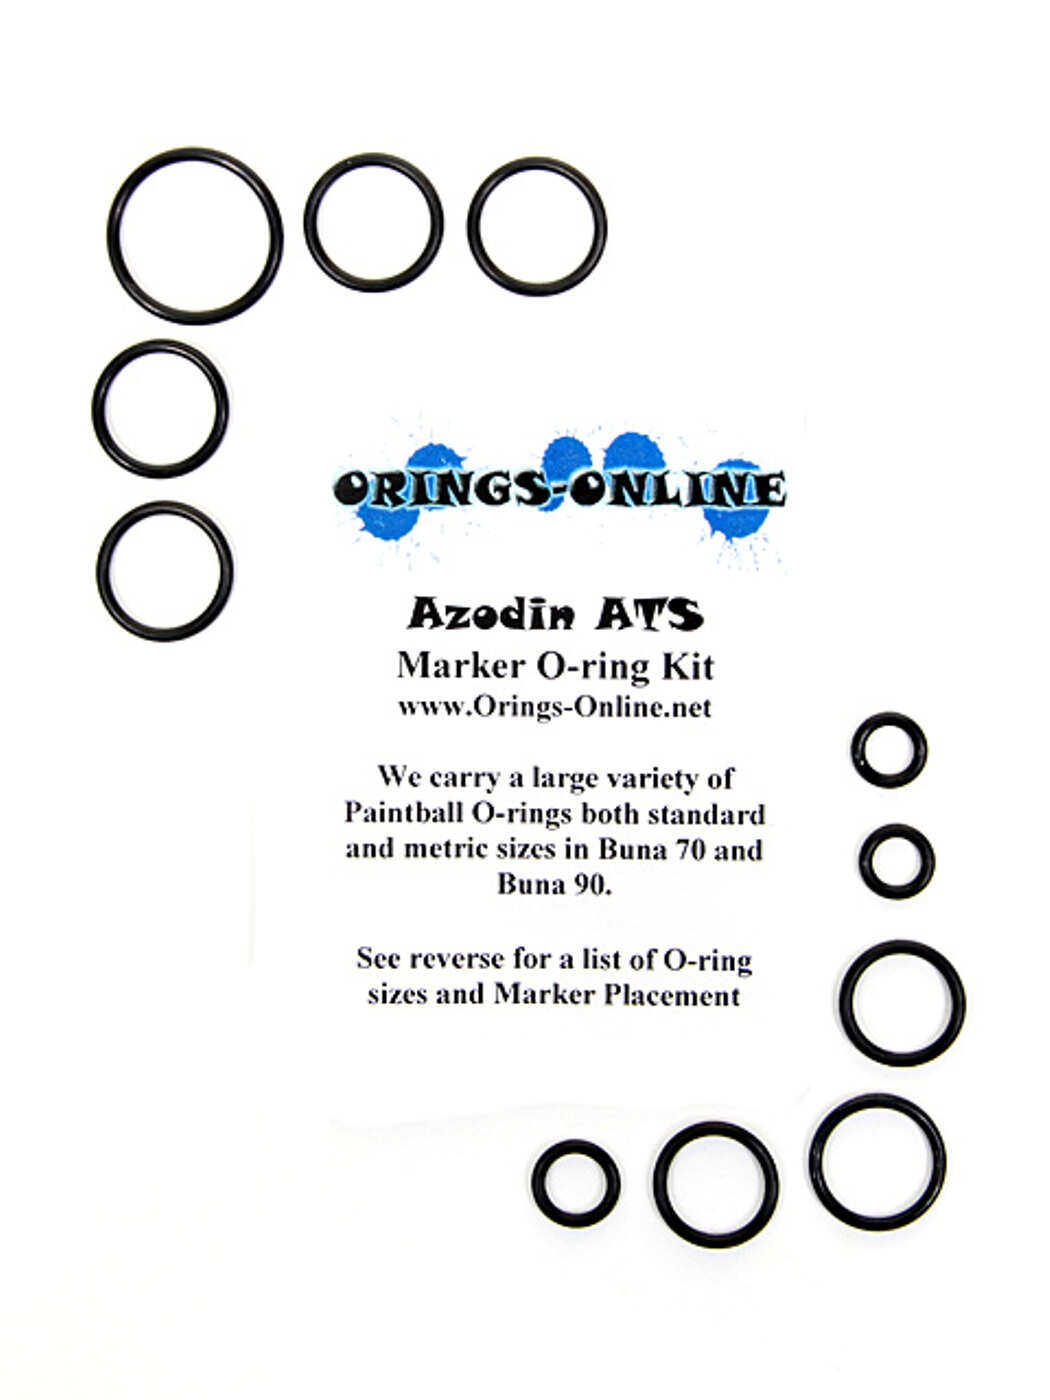 Azodin ATS Marker O-ring Kit Rebuilds